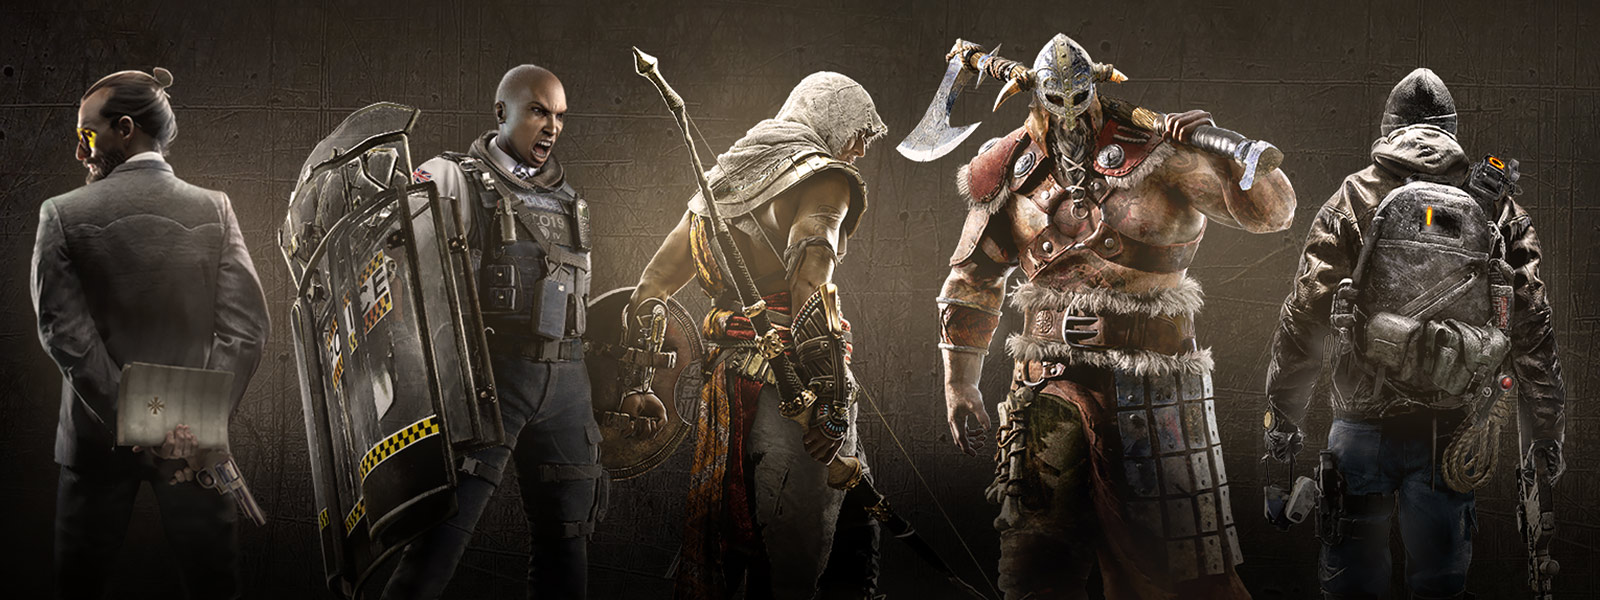 Characters from Farcry 5 Rainbow Six Siege Assassins Creed For Honor and the Division